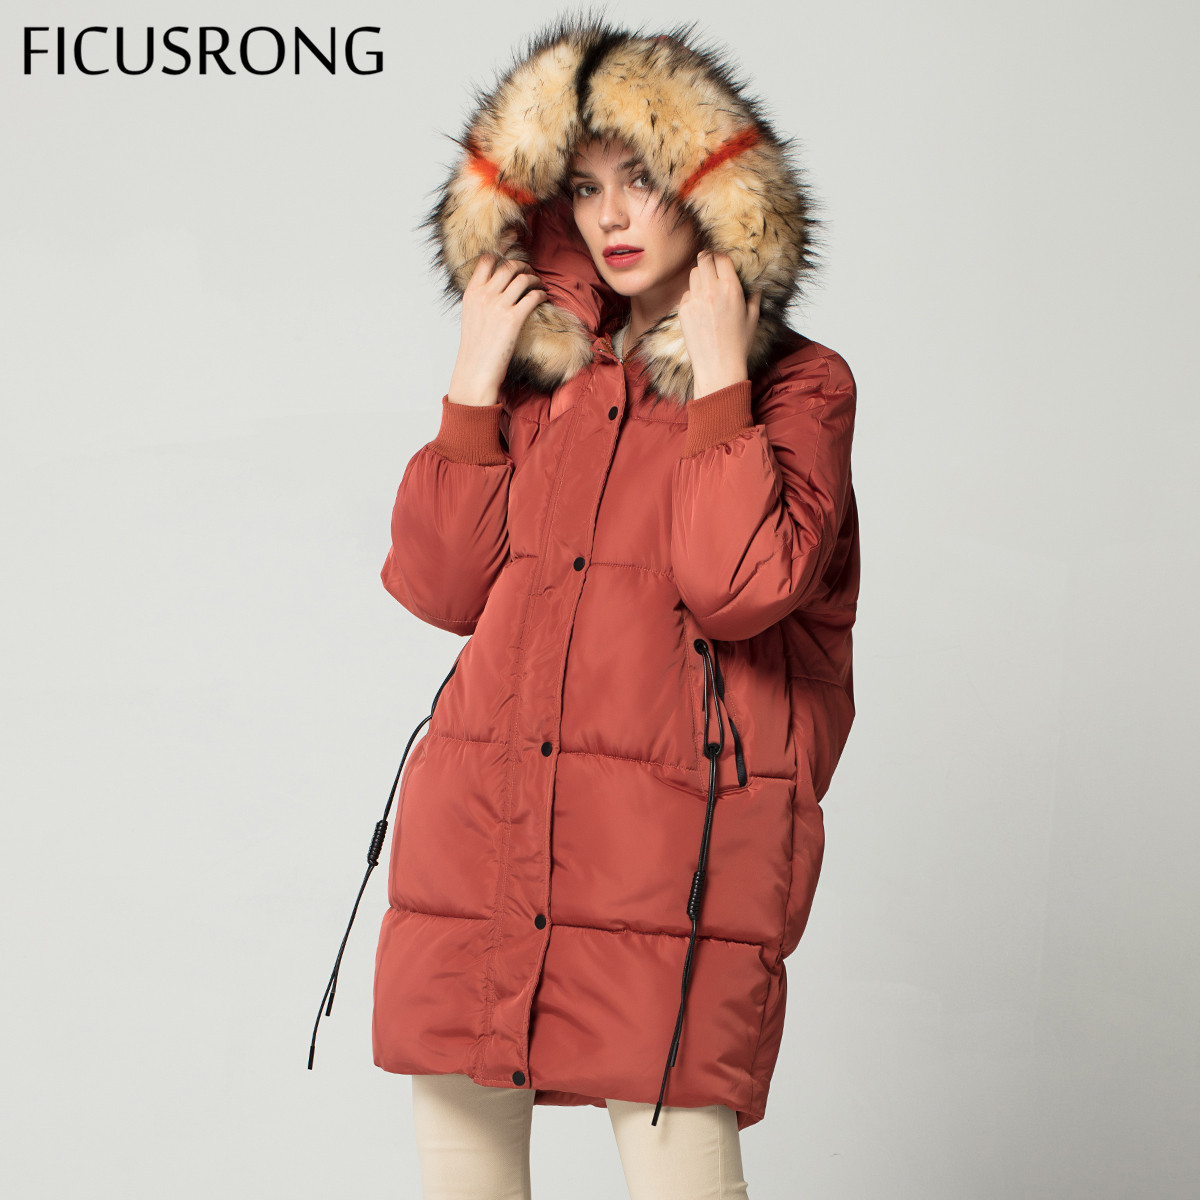 Fashion Plus Size Loose Warm Winter Jacket Women Hooded Fur Coat Down   Parkas   Long Cotton Padded Jacket Female FICUSRONG 2018 New